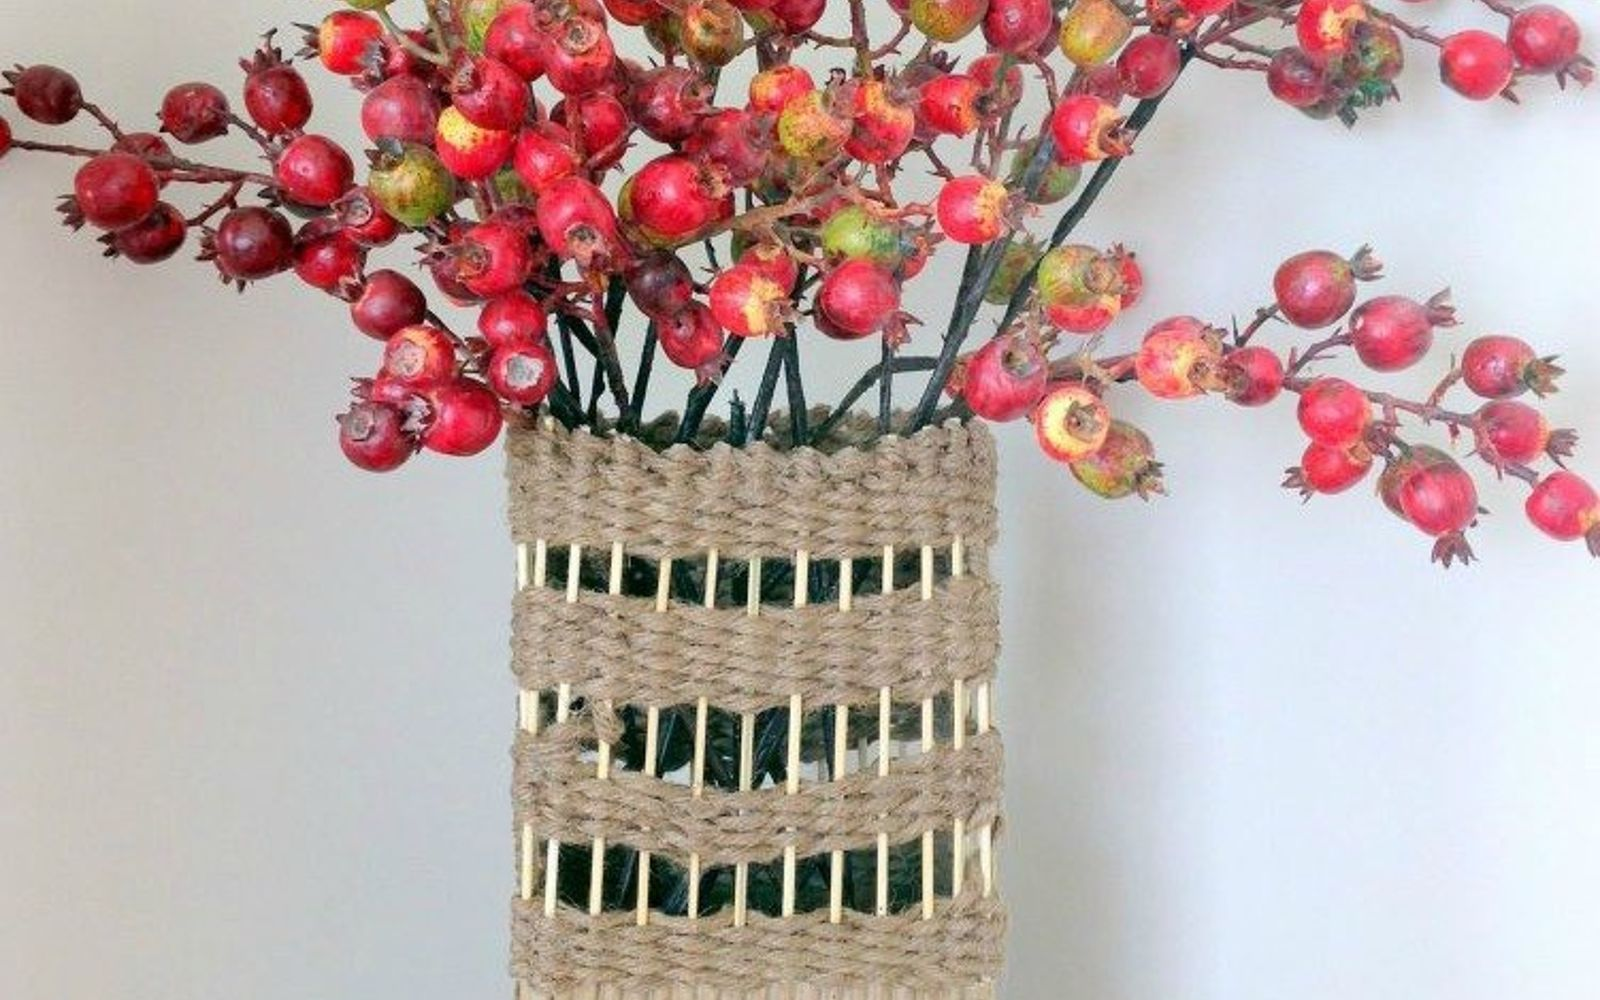 s 15 brilliant ways to reuse your empty cardboard boxes, home decor, repurposing upcycling, Wrap It in Jute Make a Vase